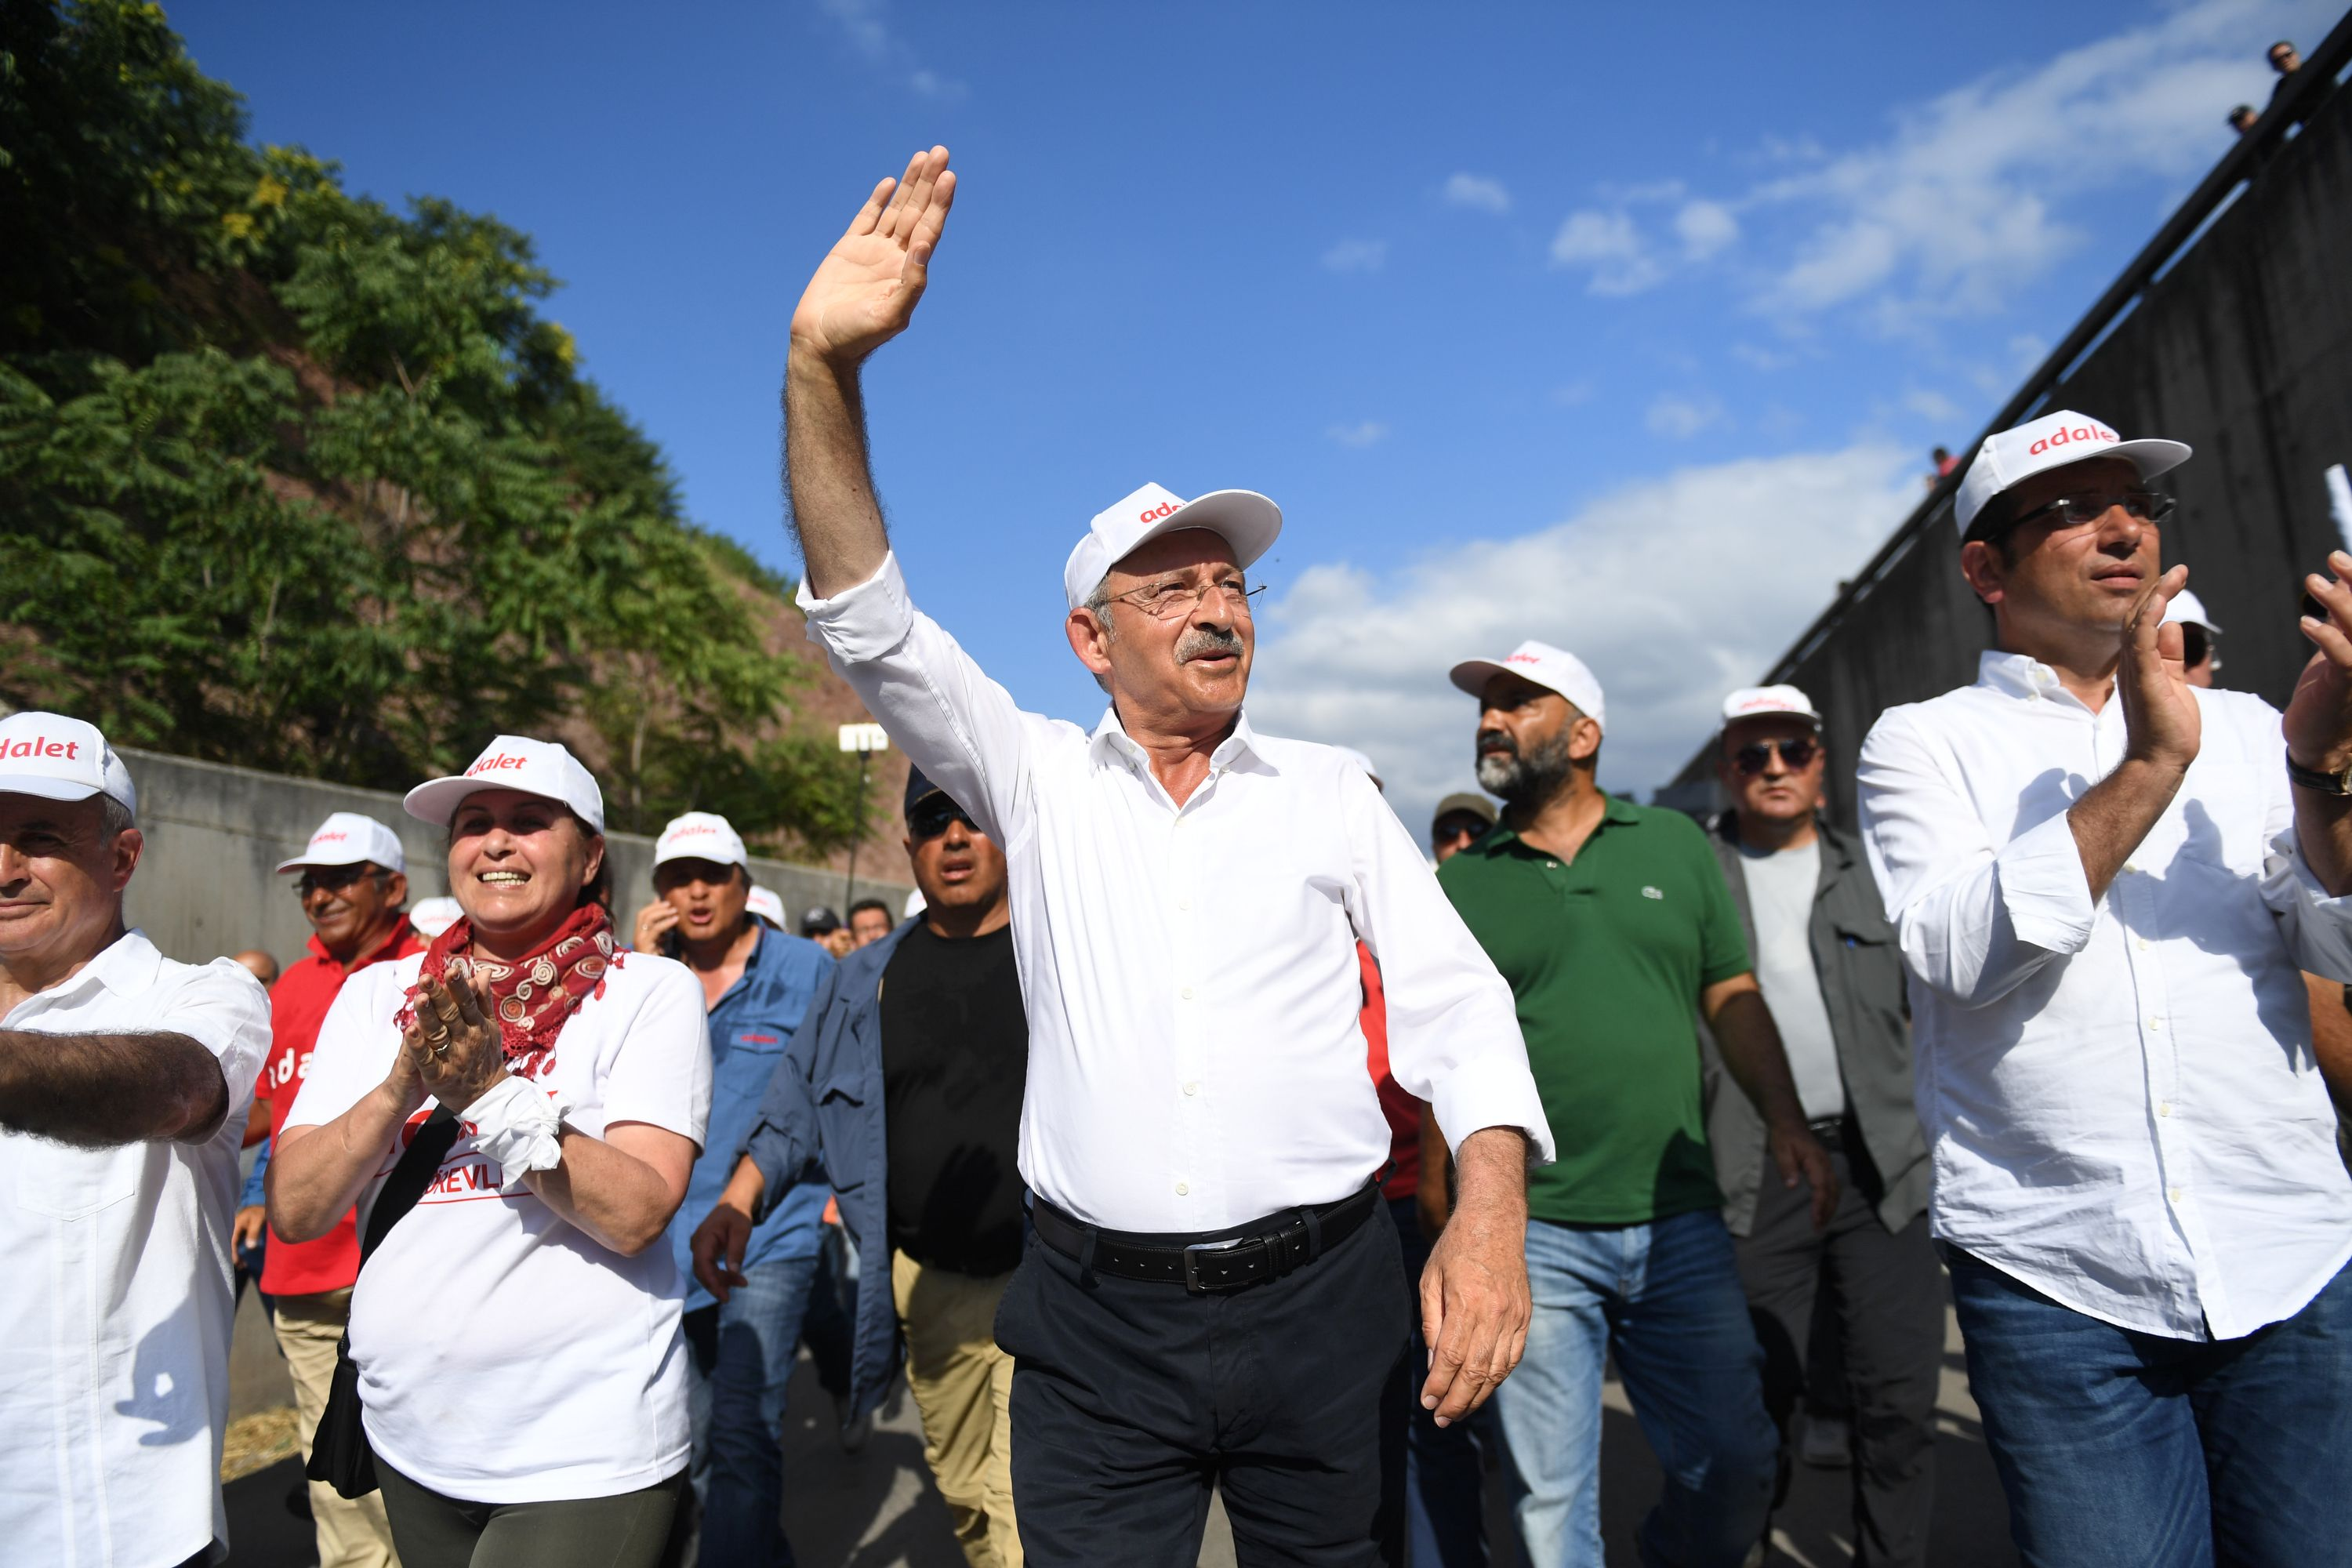 Kemal Kilicdaroglu (C), the leader of Turkey's main opposition Republican People's Party, walks with thousands of supporters on the 21st day march for justice   in Izmit, July 5, 2017